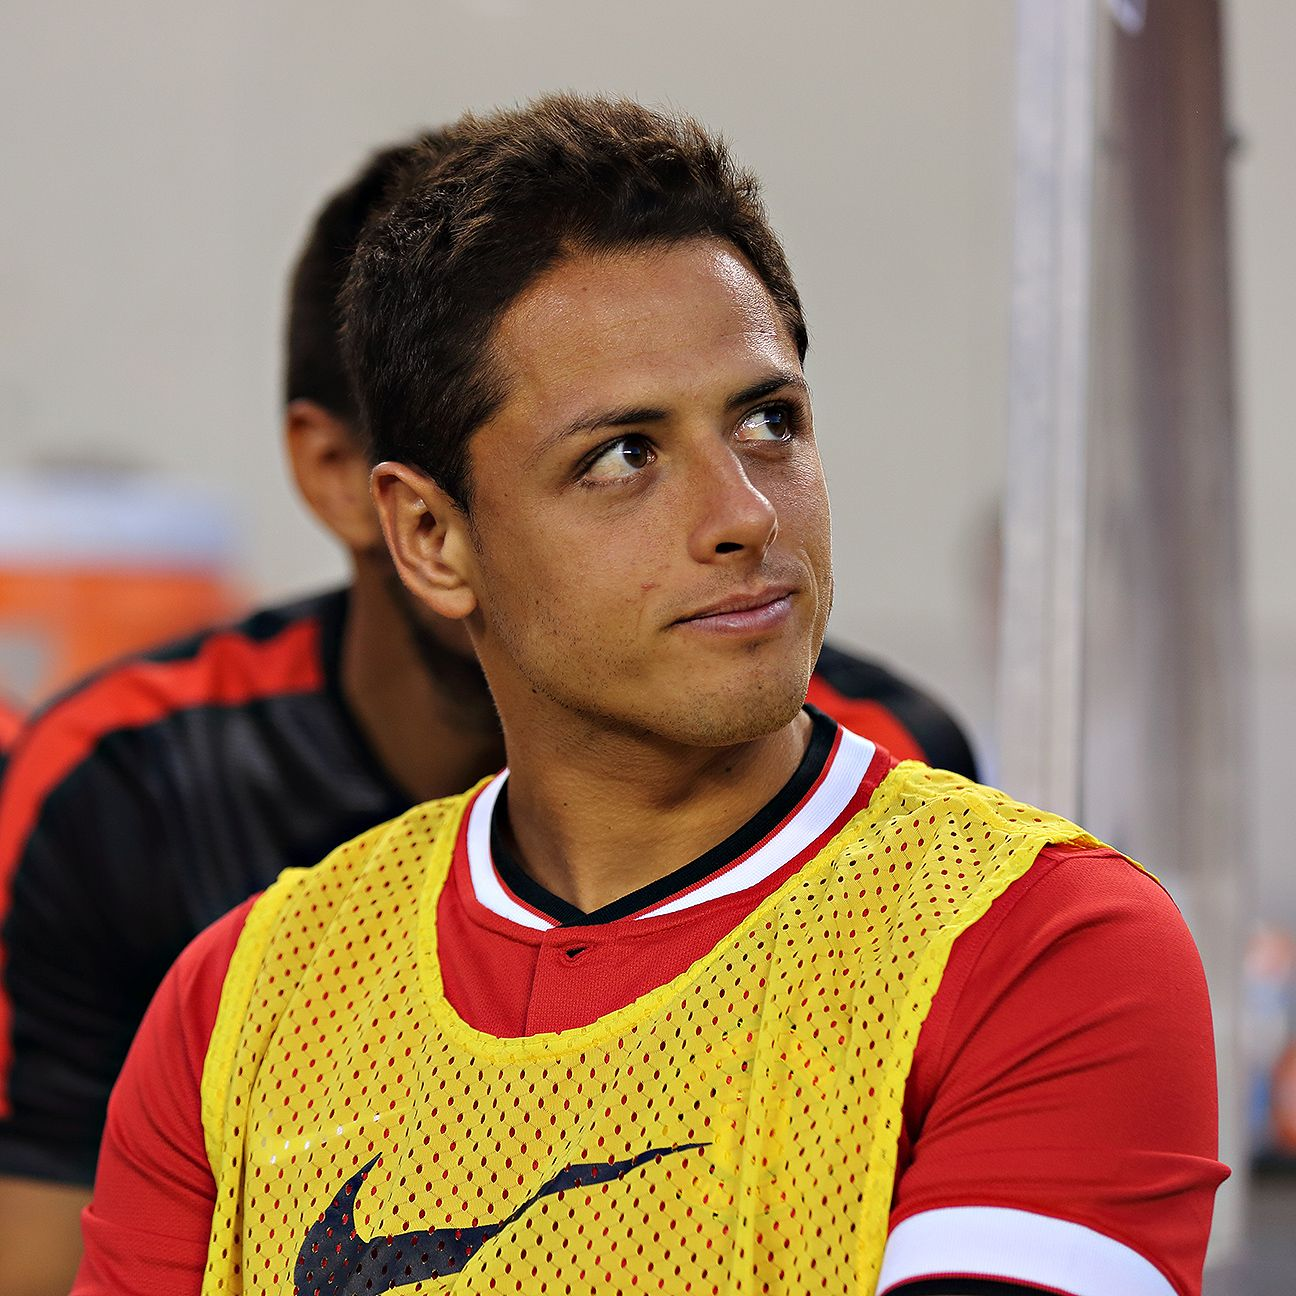 Chicharito Hernandez will be hoping his days of being on the bench will be over upon joining Bayer Leverkusen.